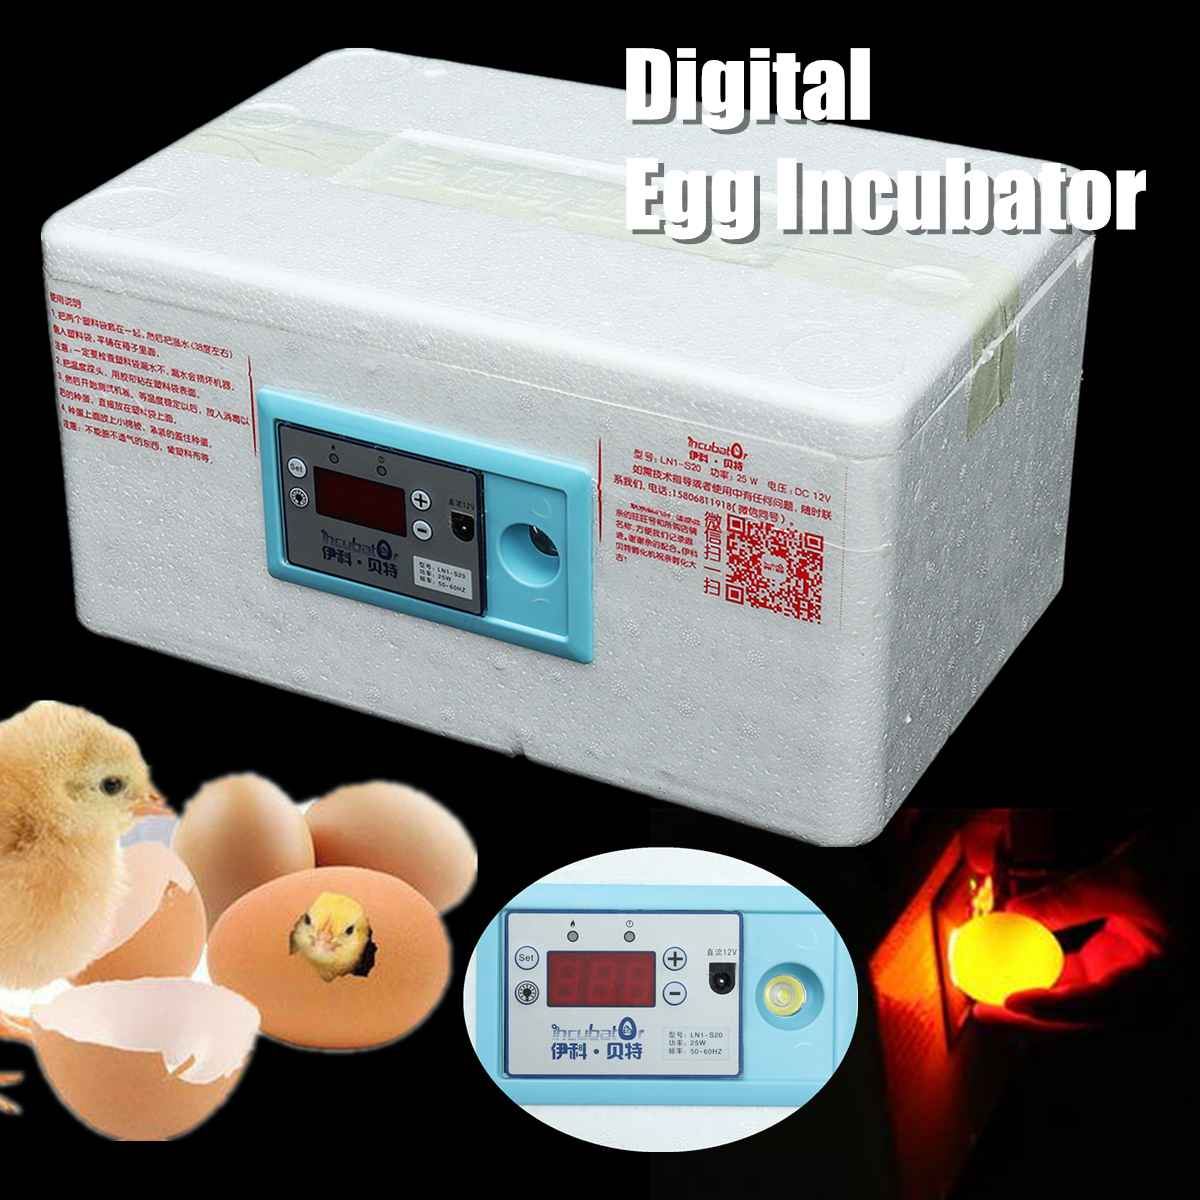 20 Position Automatic Digital Family Eggs Incubator Chicken Poultry Hatcher Foam Home Waterbed Incubator Farm Incubation Tools